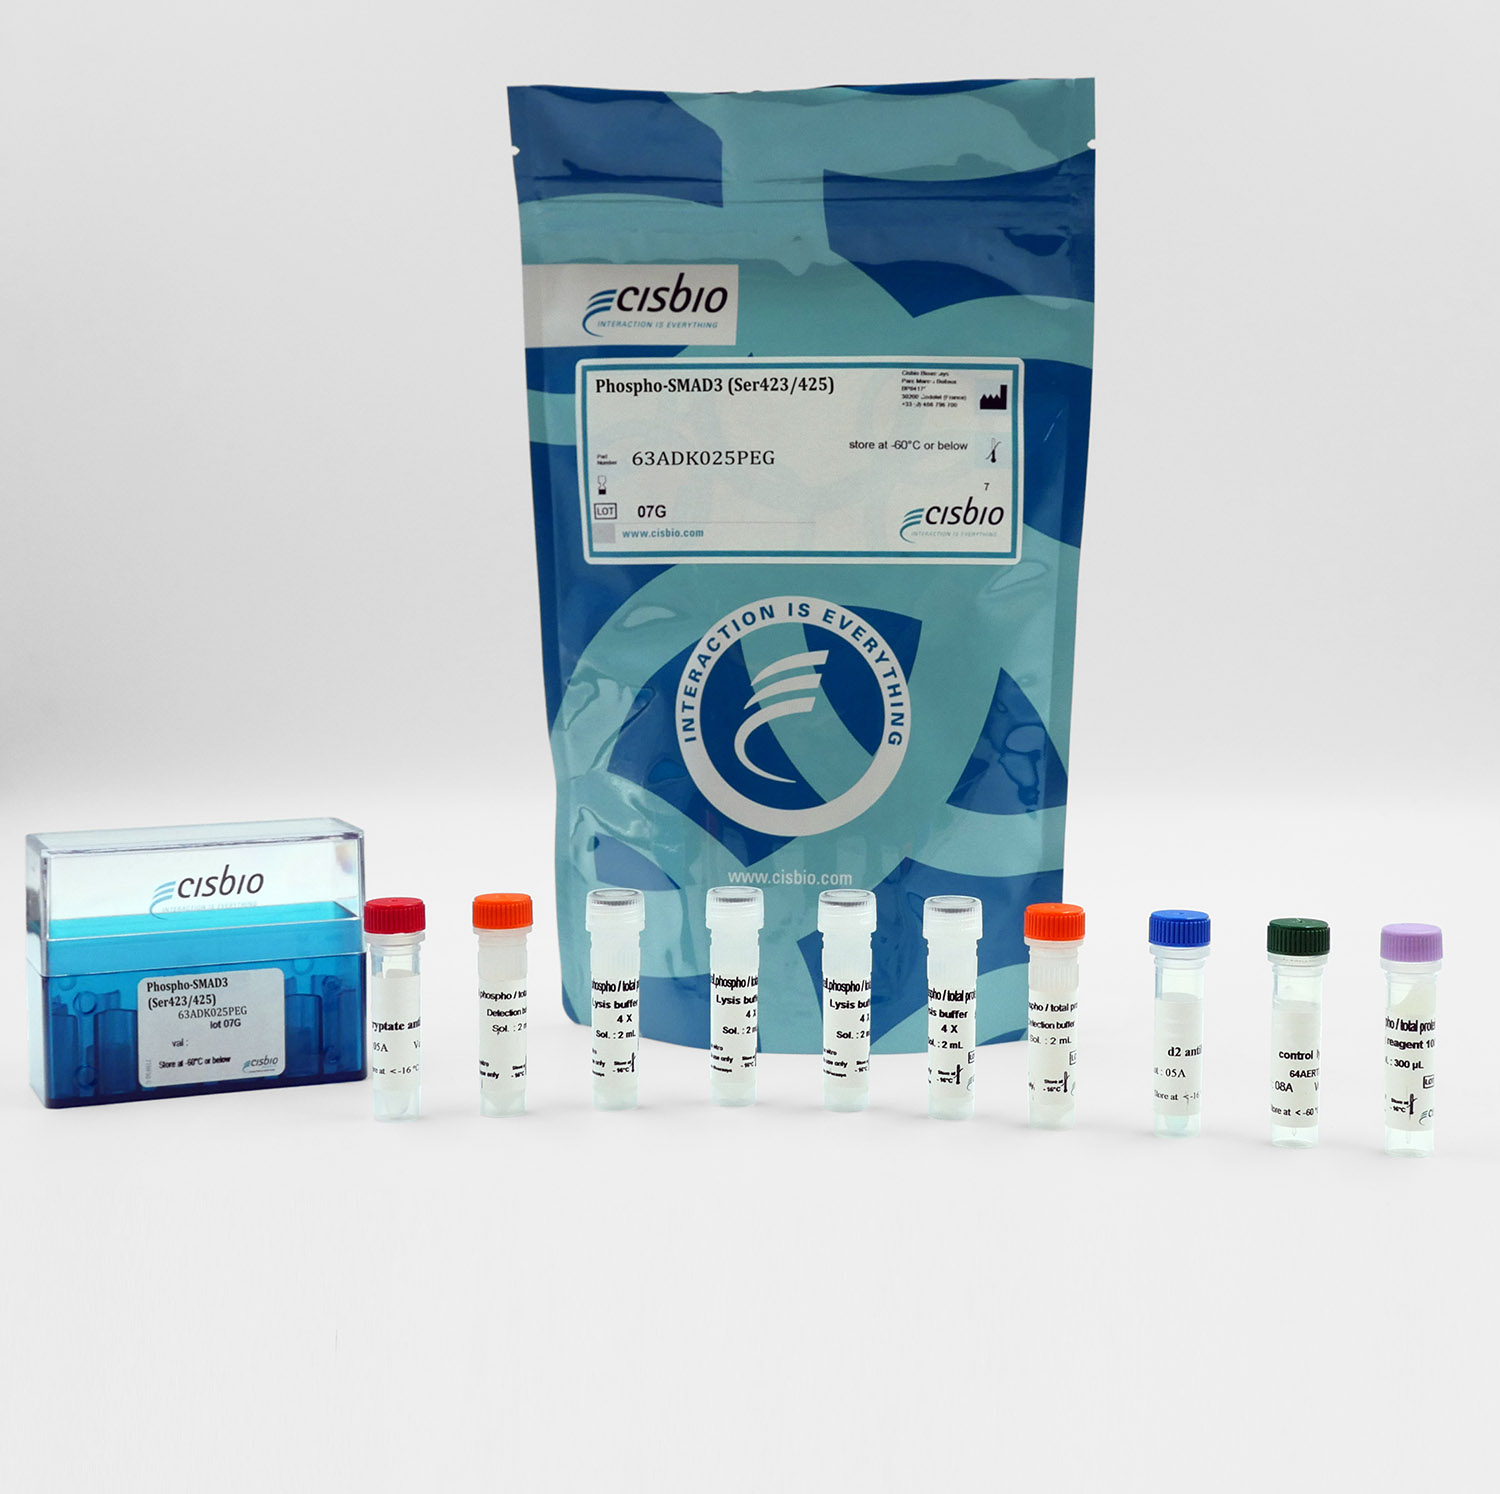 Phospho-SMAD3 (Ser423/425) cellular assay kit